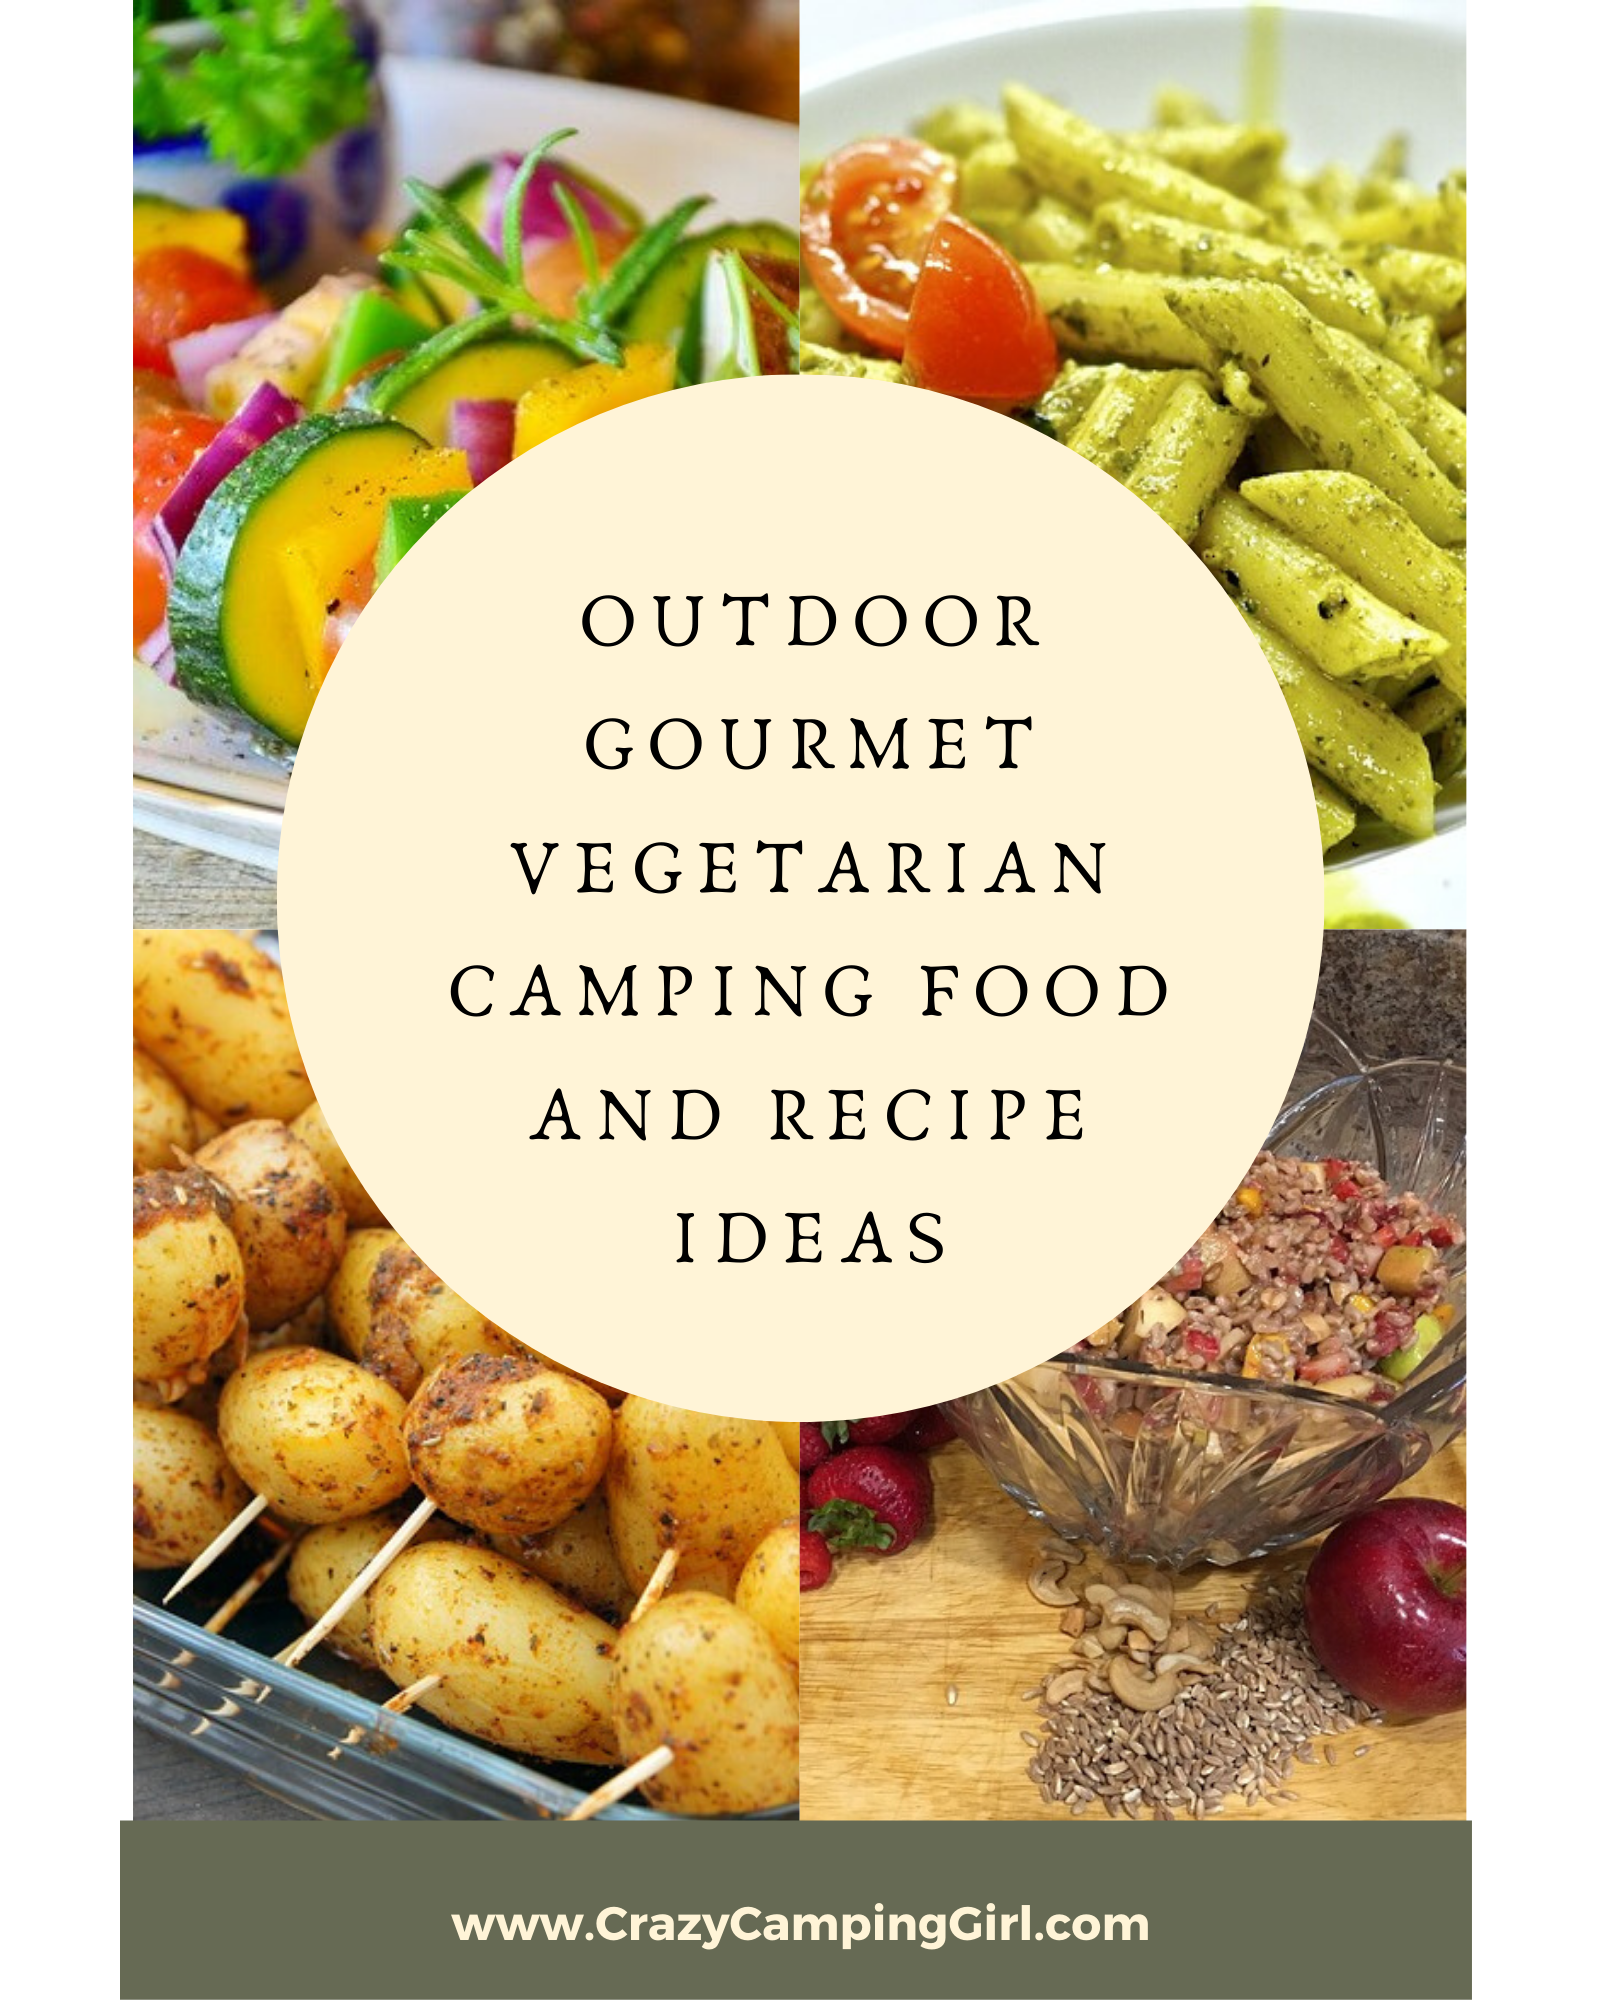 Outdoor Gourmet Vegetarian Camping Food and Recipe Ideas